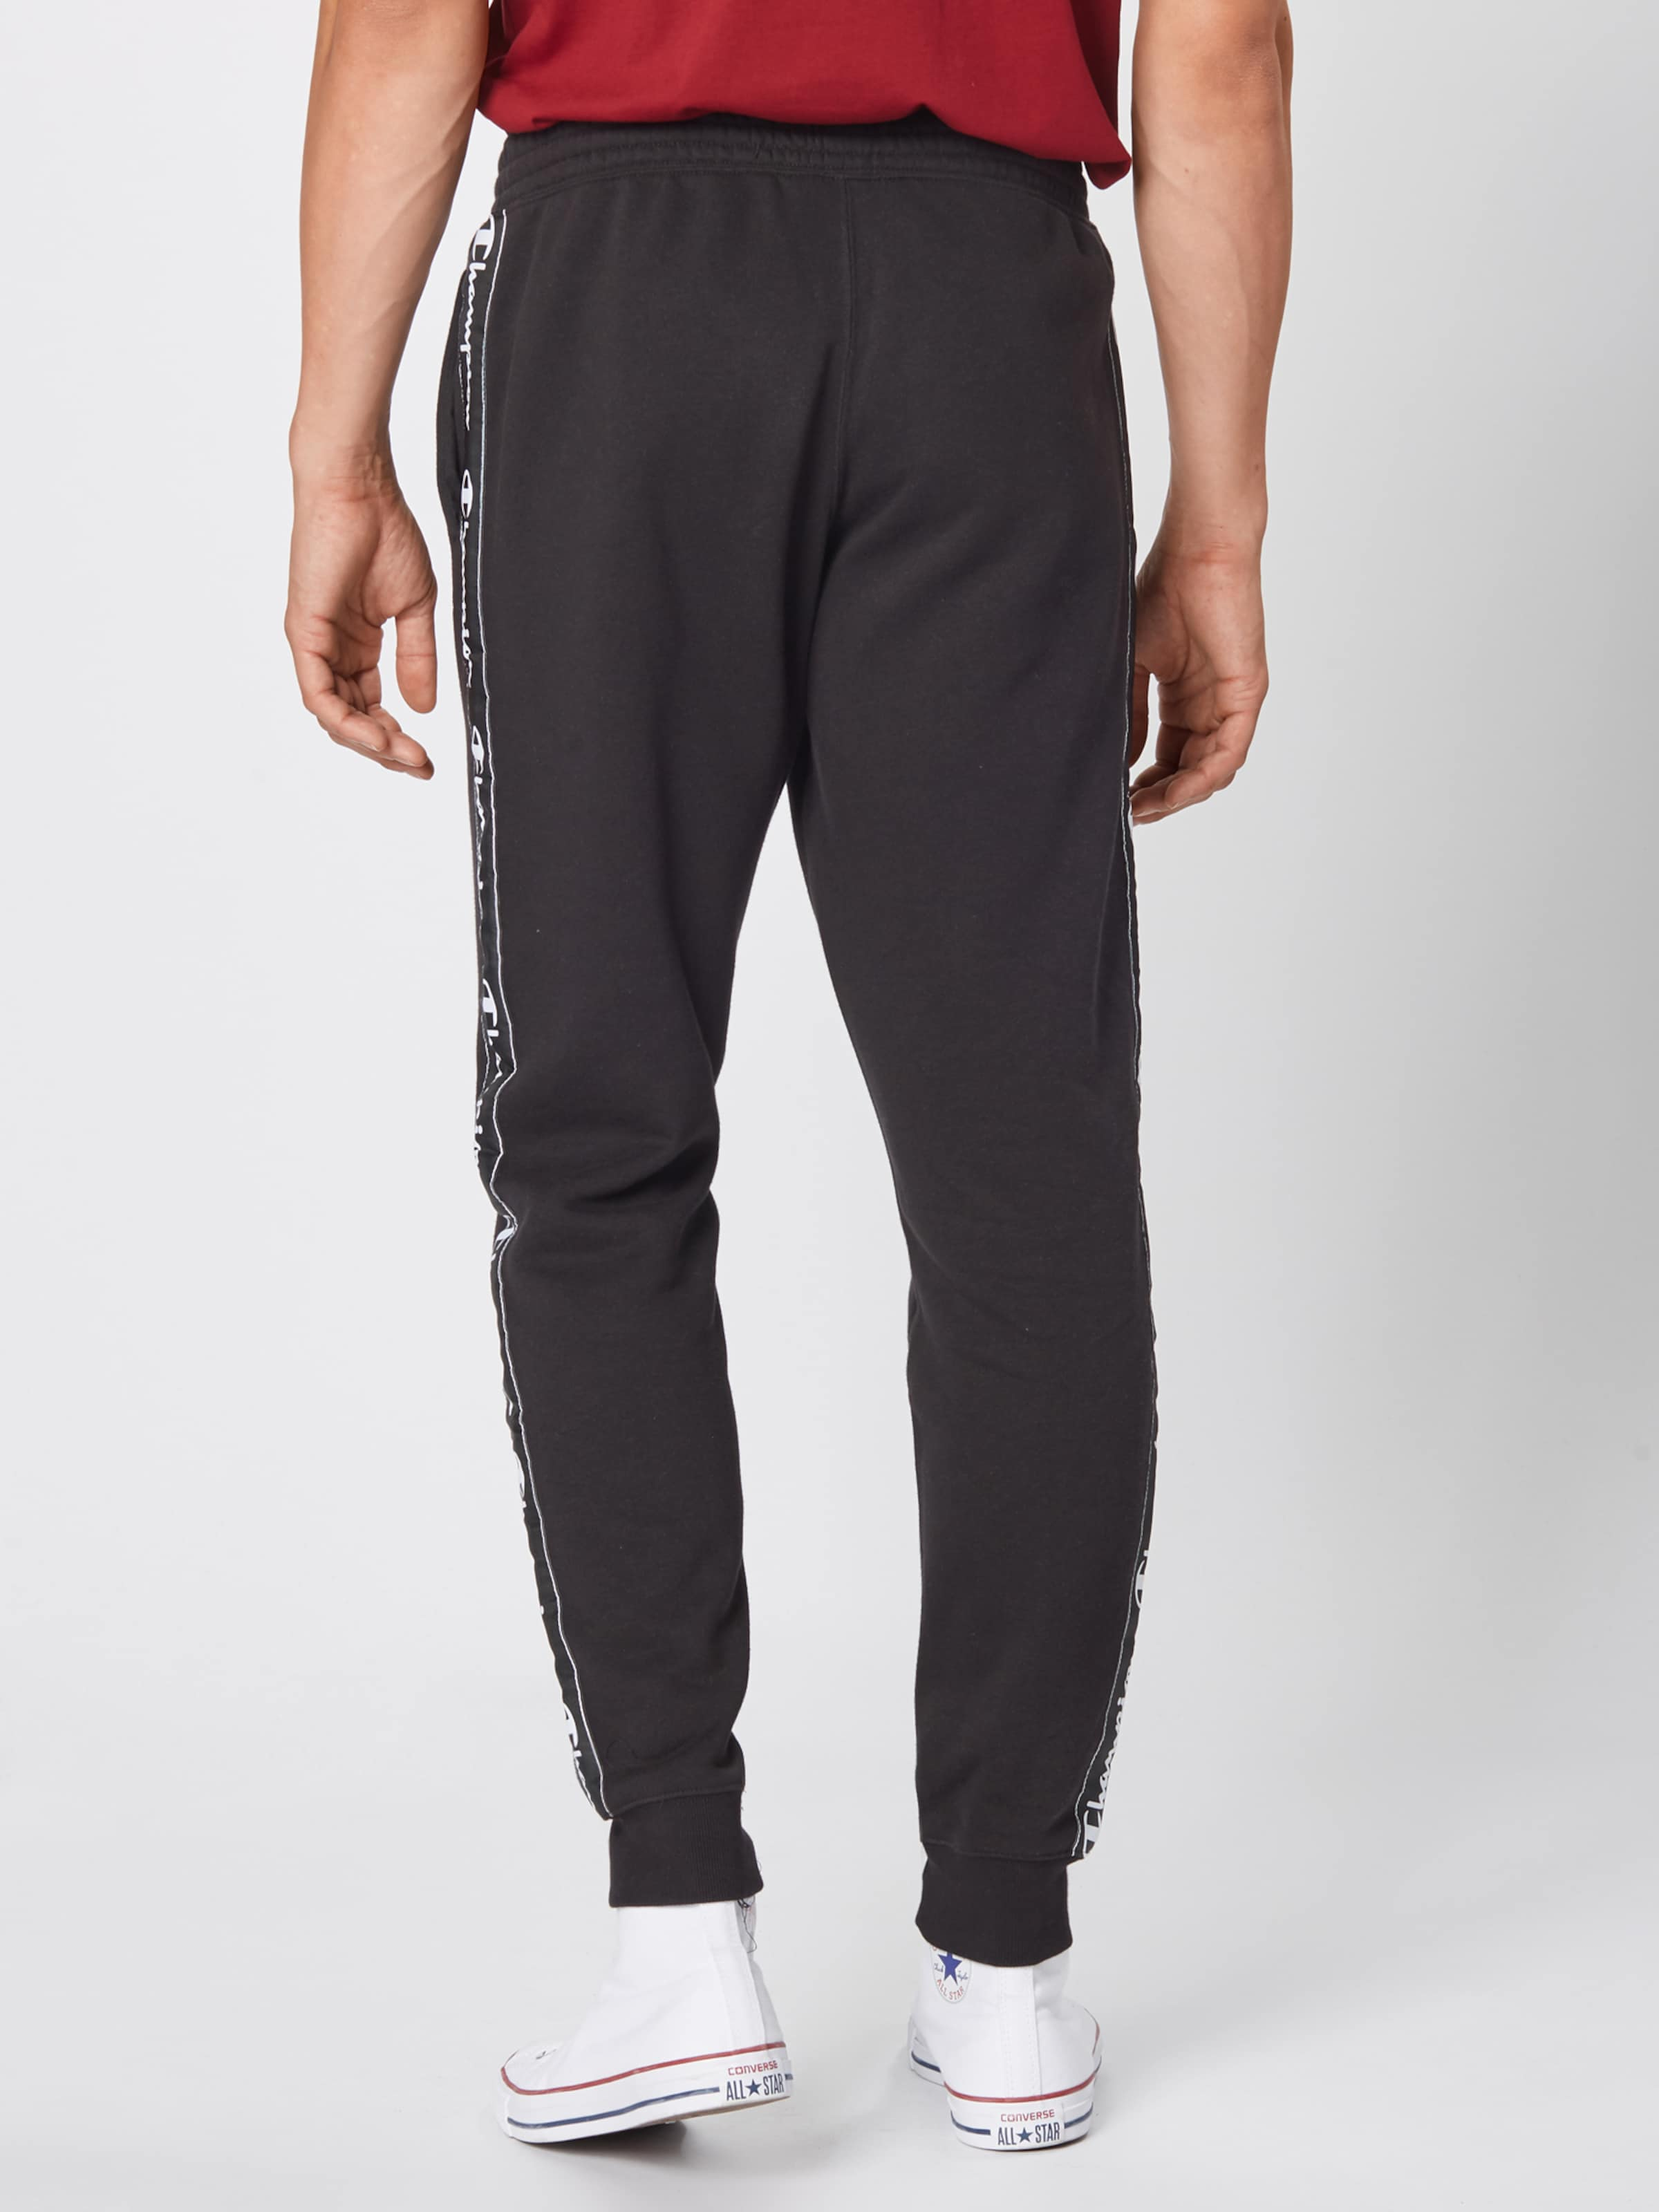 Apparel Hose Athletic Schwarz In Champion Authentic TFKl1Jc3